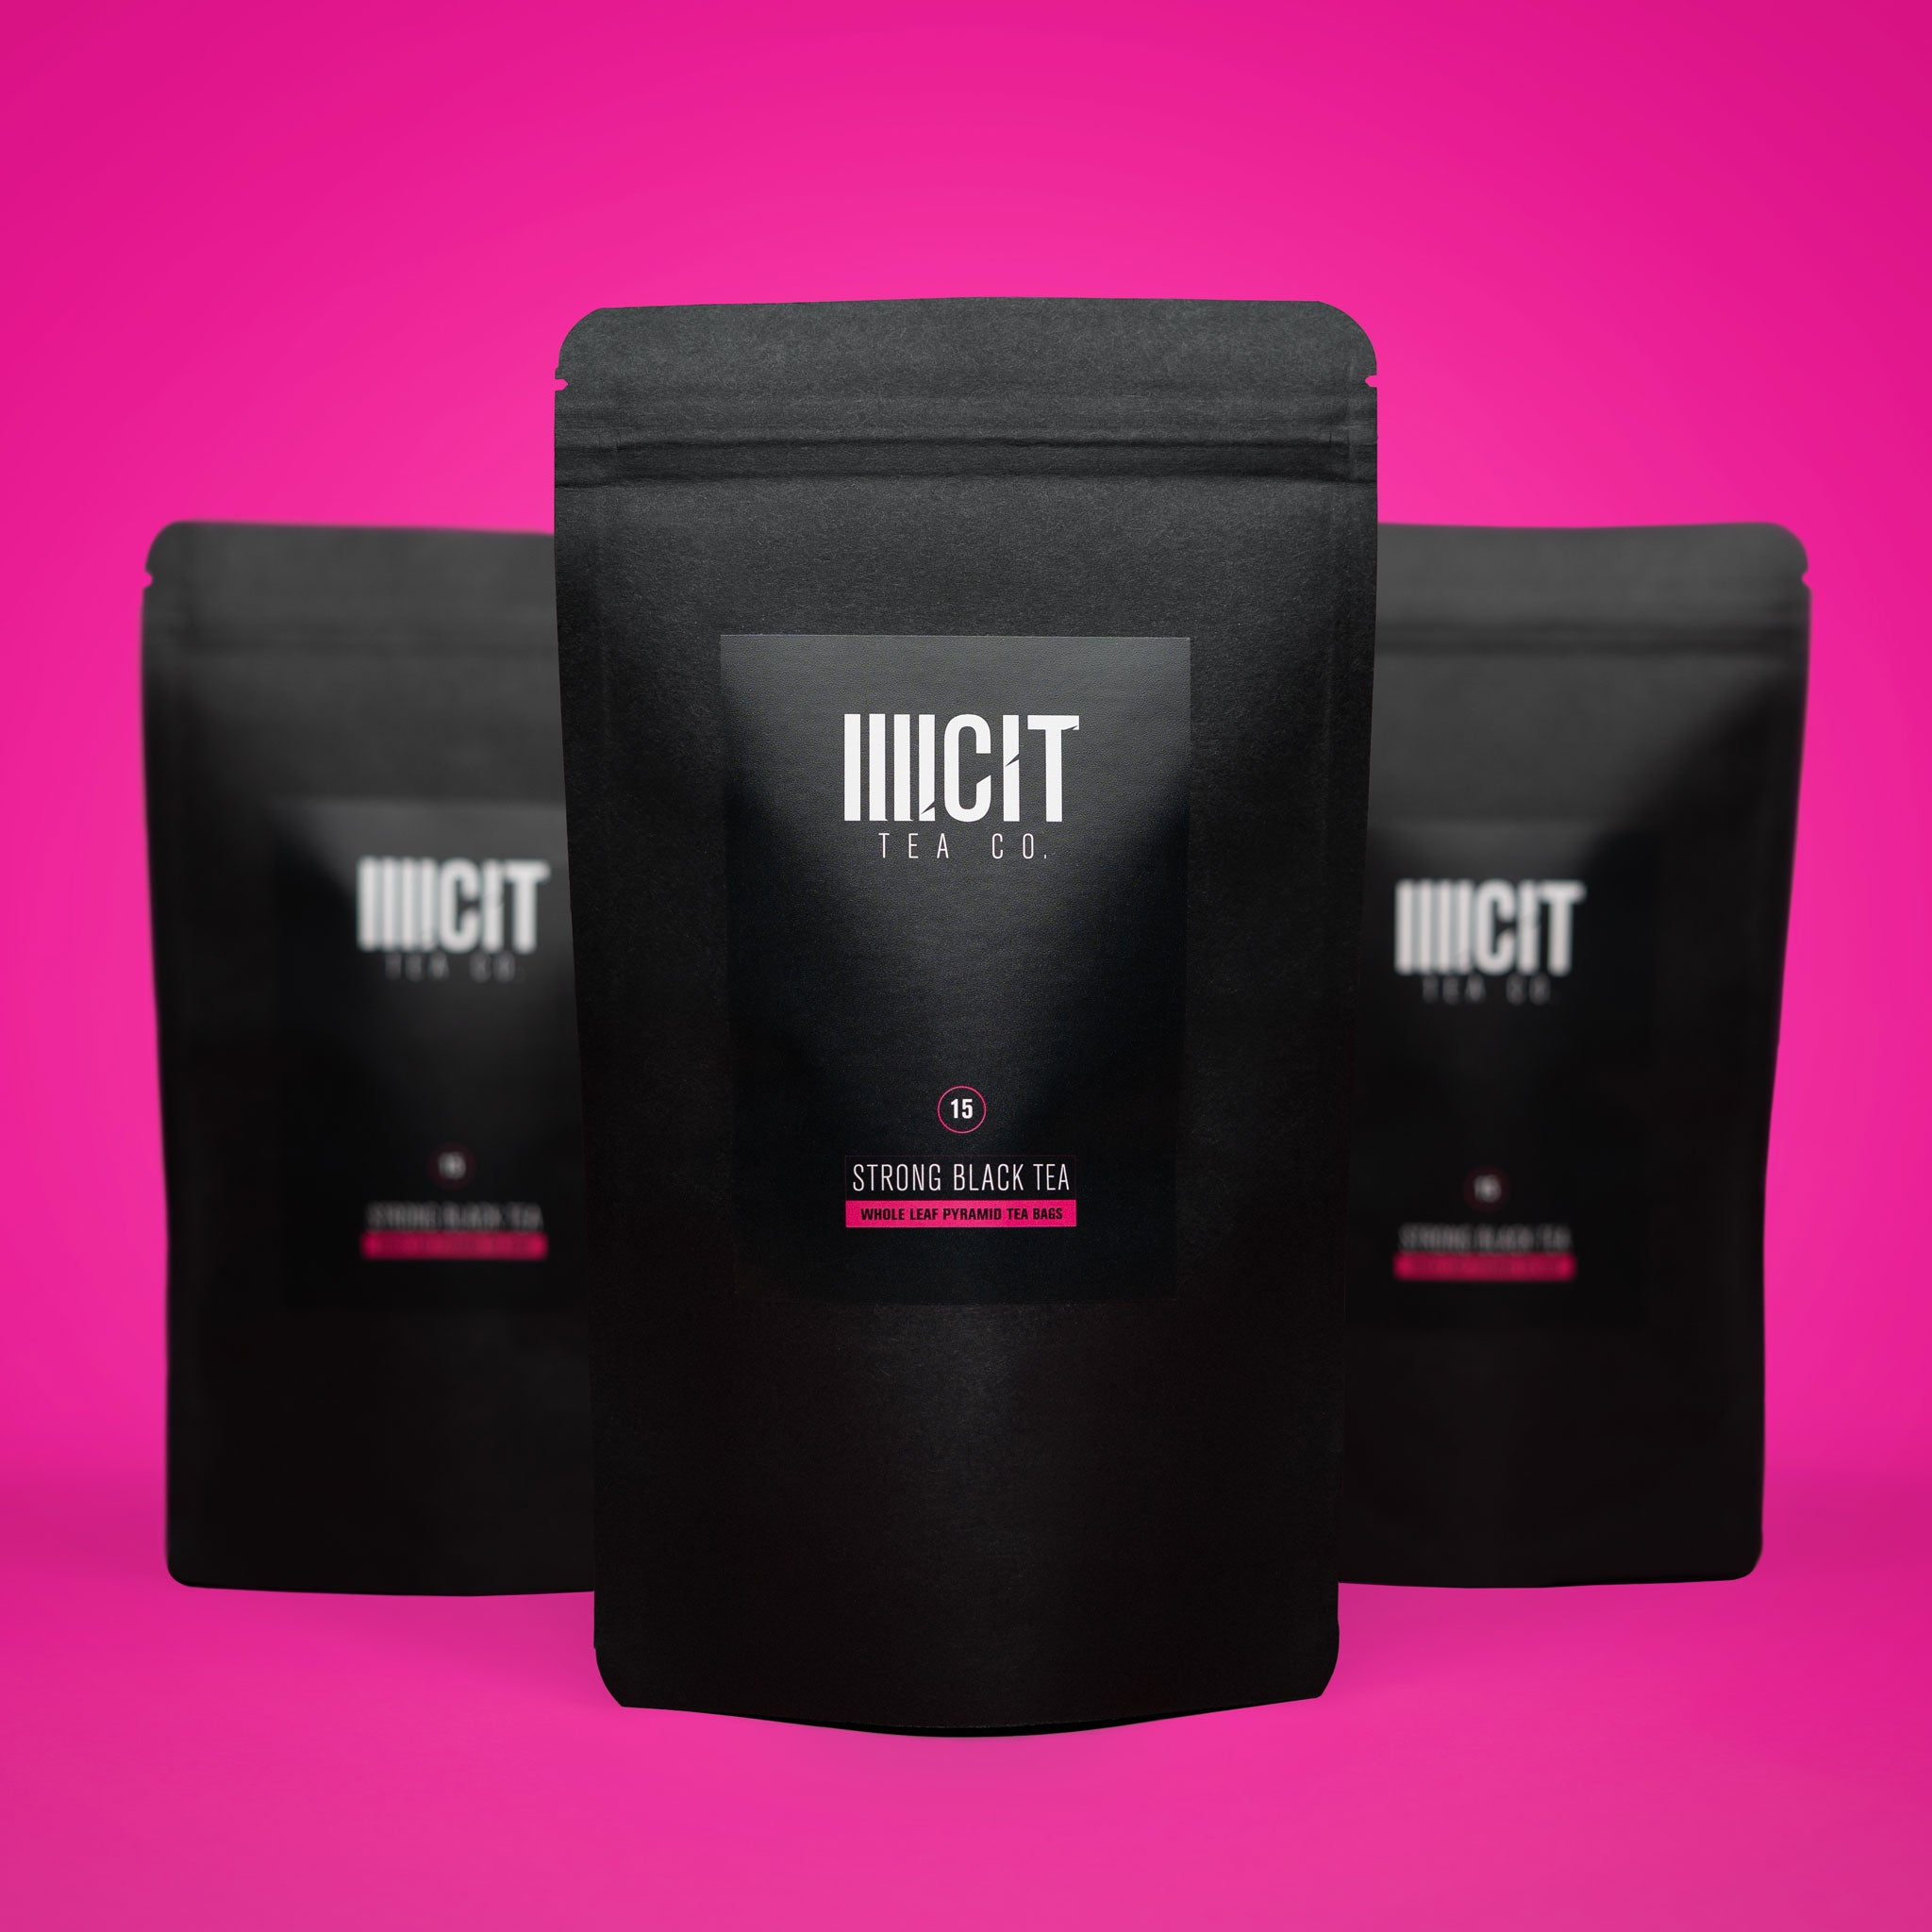 Illicit Tea Co. | Strong Black Tea